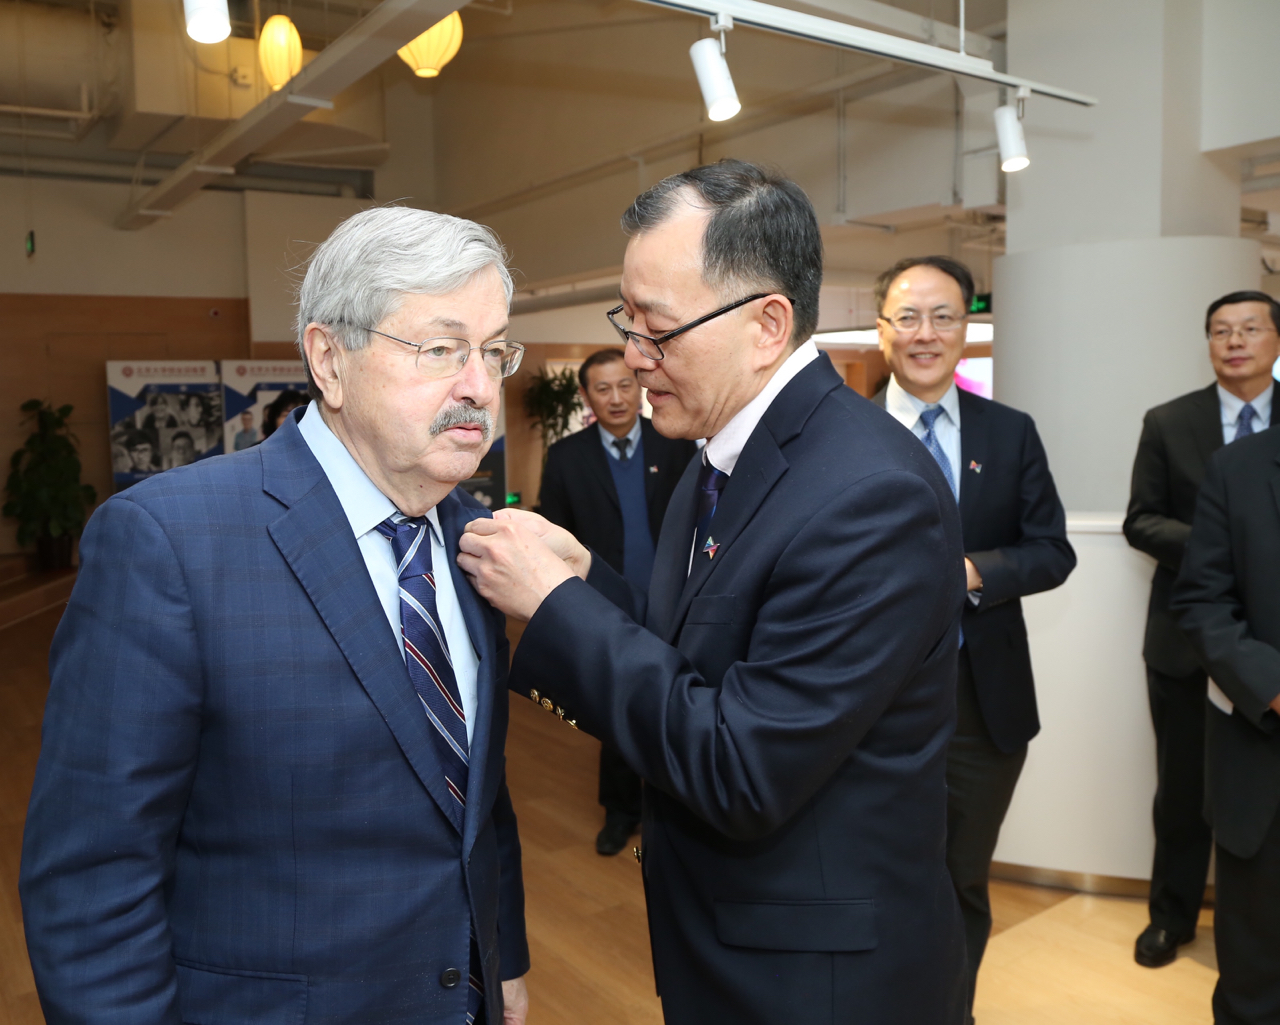 Welcoming US Ambassador to China Mr. Branstad at the launching ceremony of China-US Joint Innovation Centre for Youth Exchange at Peking University